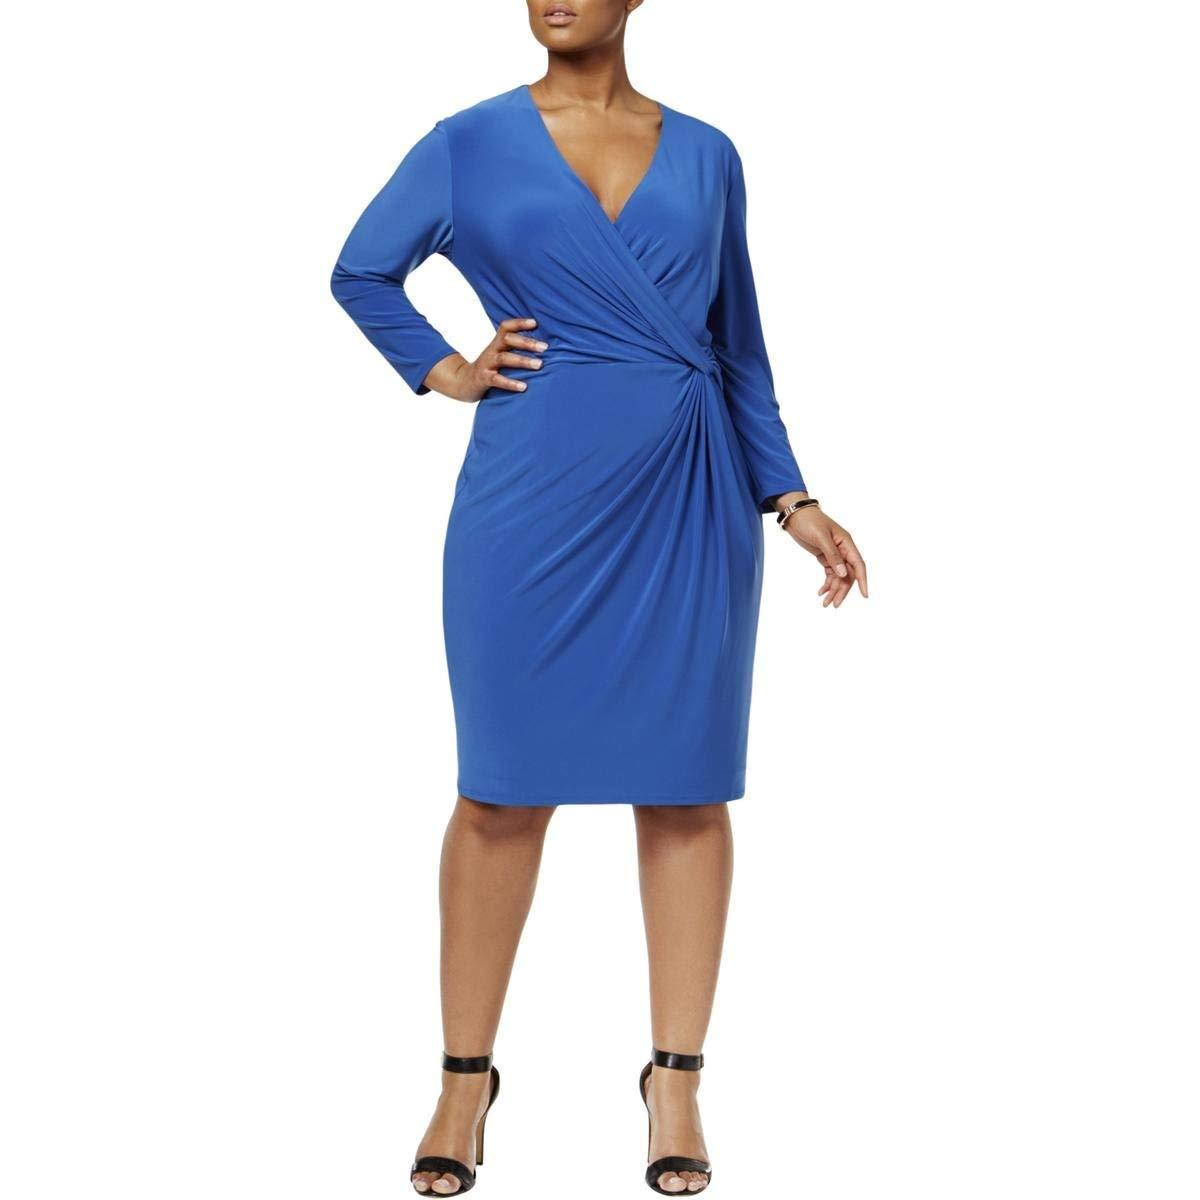 Primary image for Anne Klein Womens Plus Knot Front Faux Wrap Wear to Work Dress Blue 3X, 2428-3